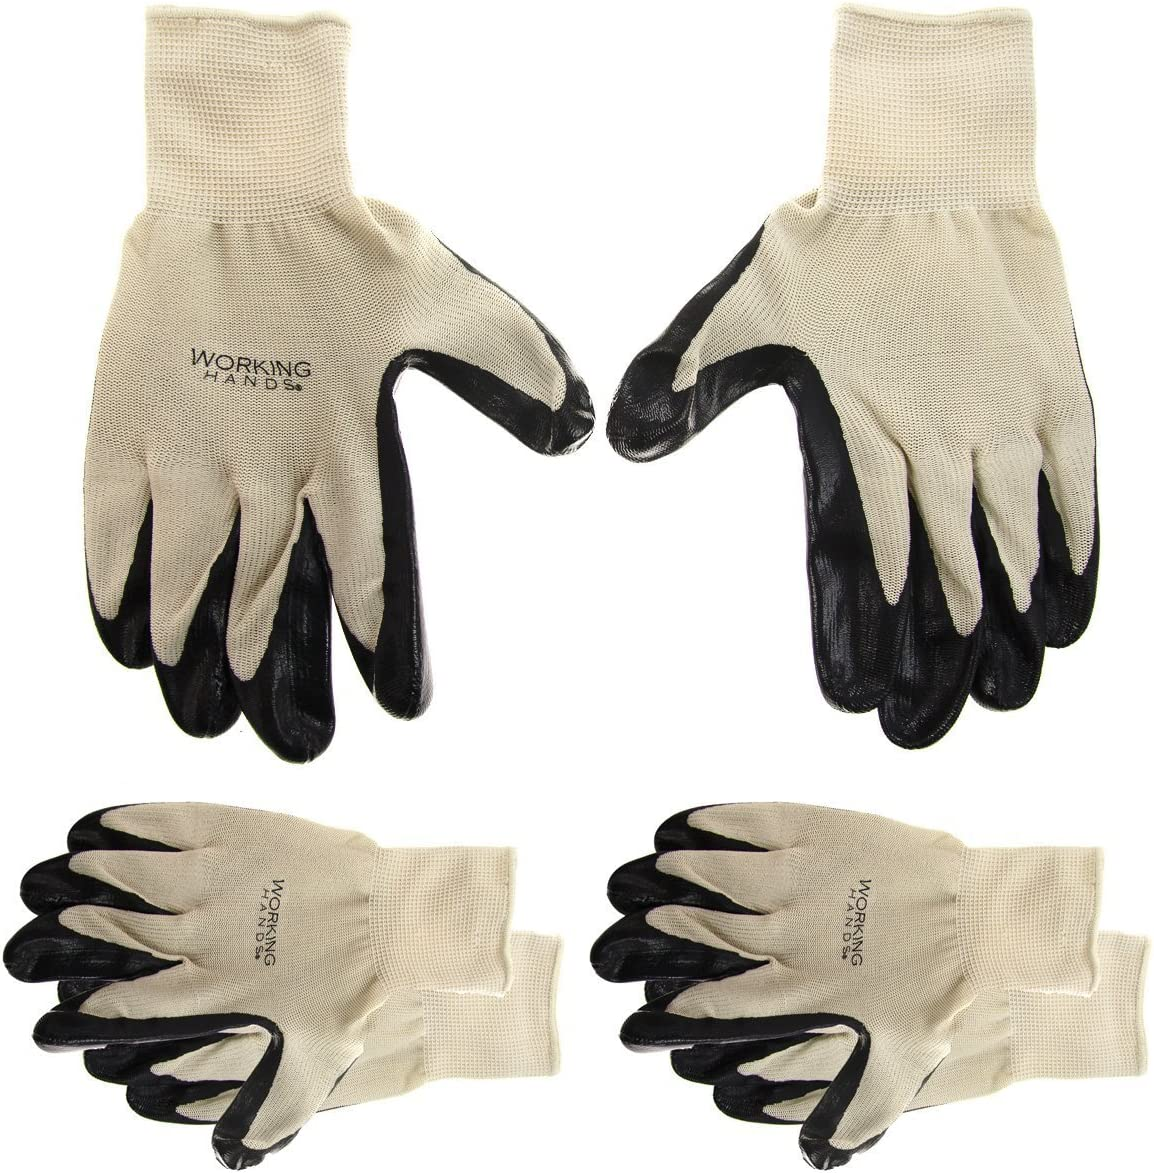 3 Pairs Of Men/'s Working Hands General Purpose/Nitrile/Coated Gloves Latex-Free Cleaning Texting Big Time Products TRTA005340